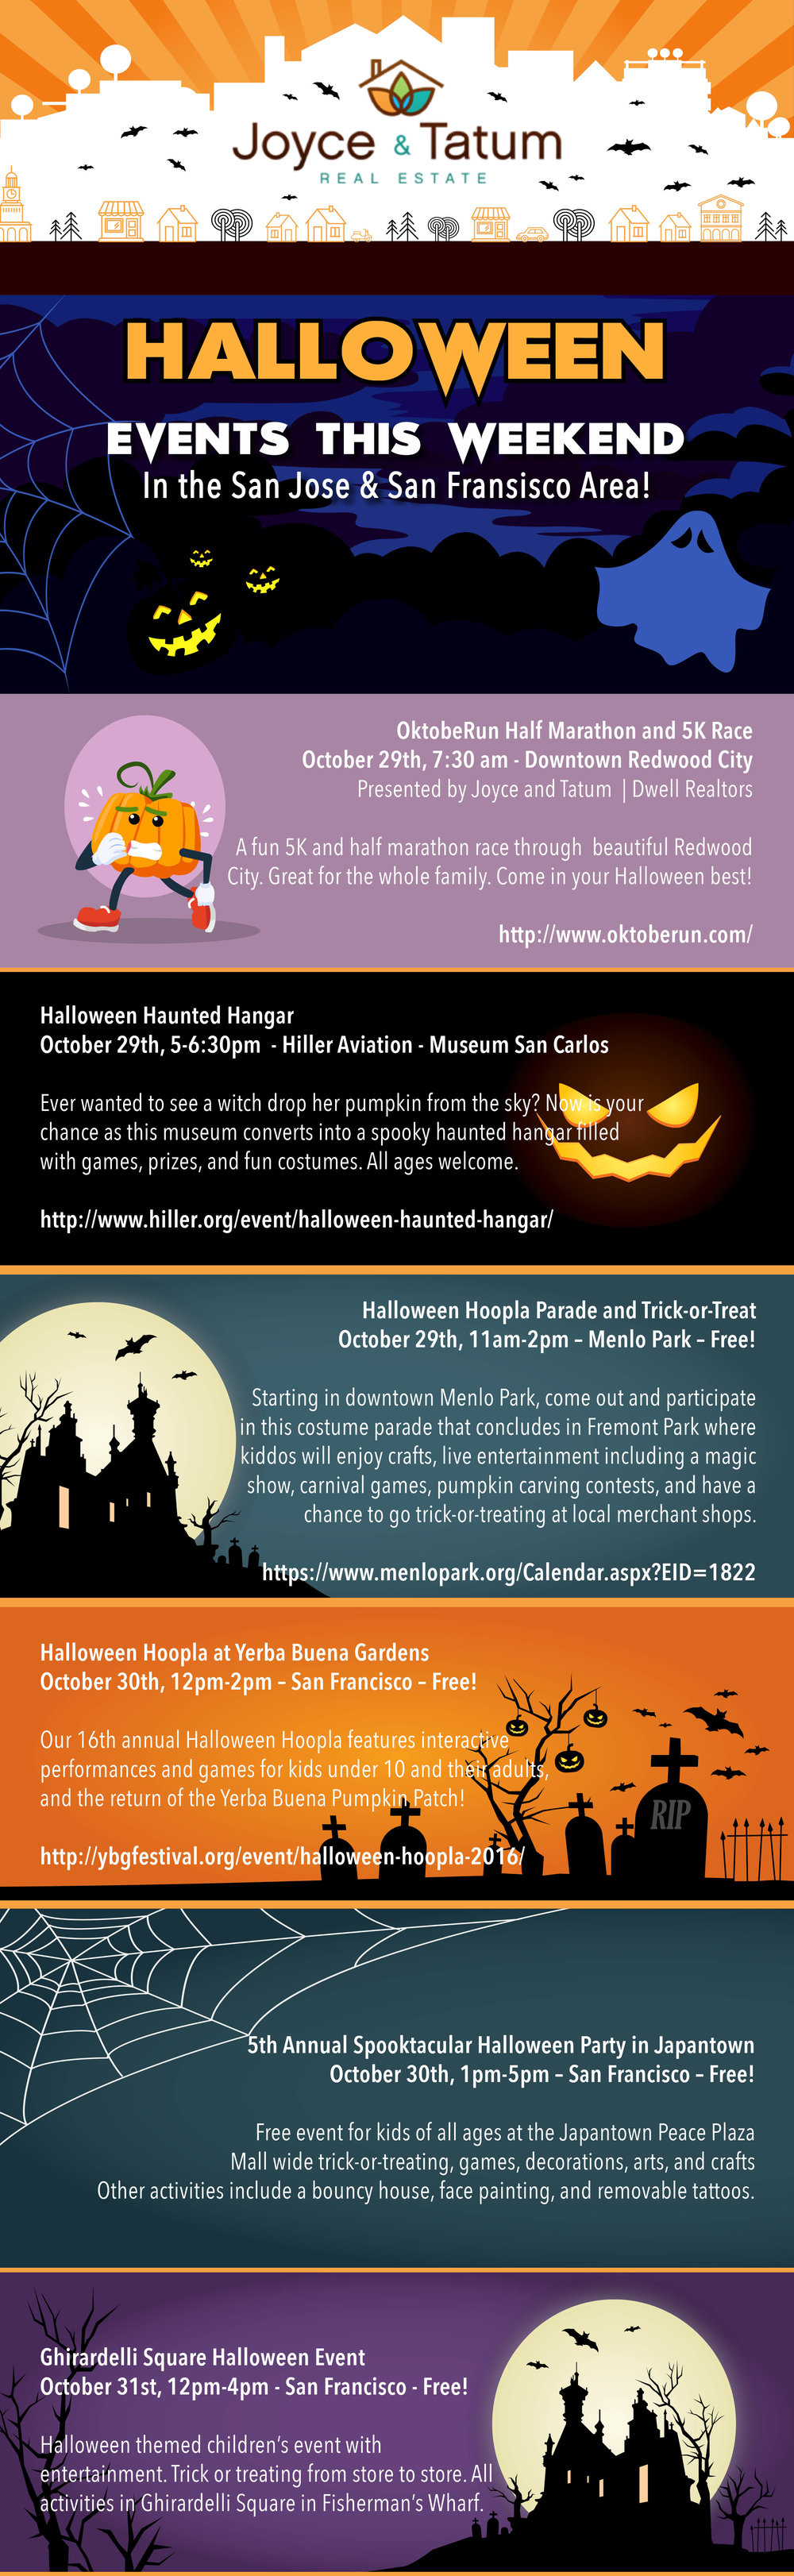 Infographic of Halloween 2016 events in the San Francisco and San Mateo area for 2016